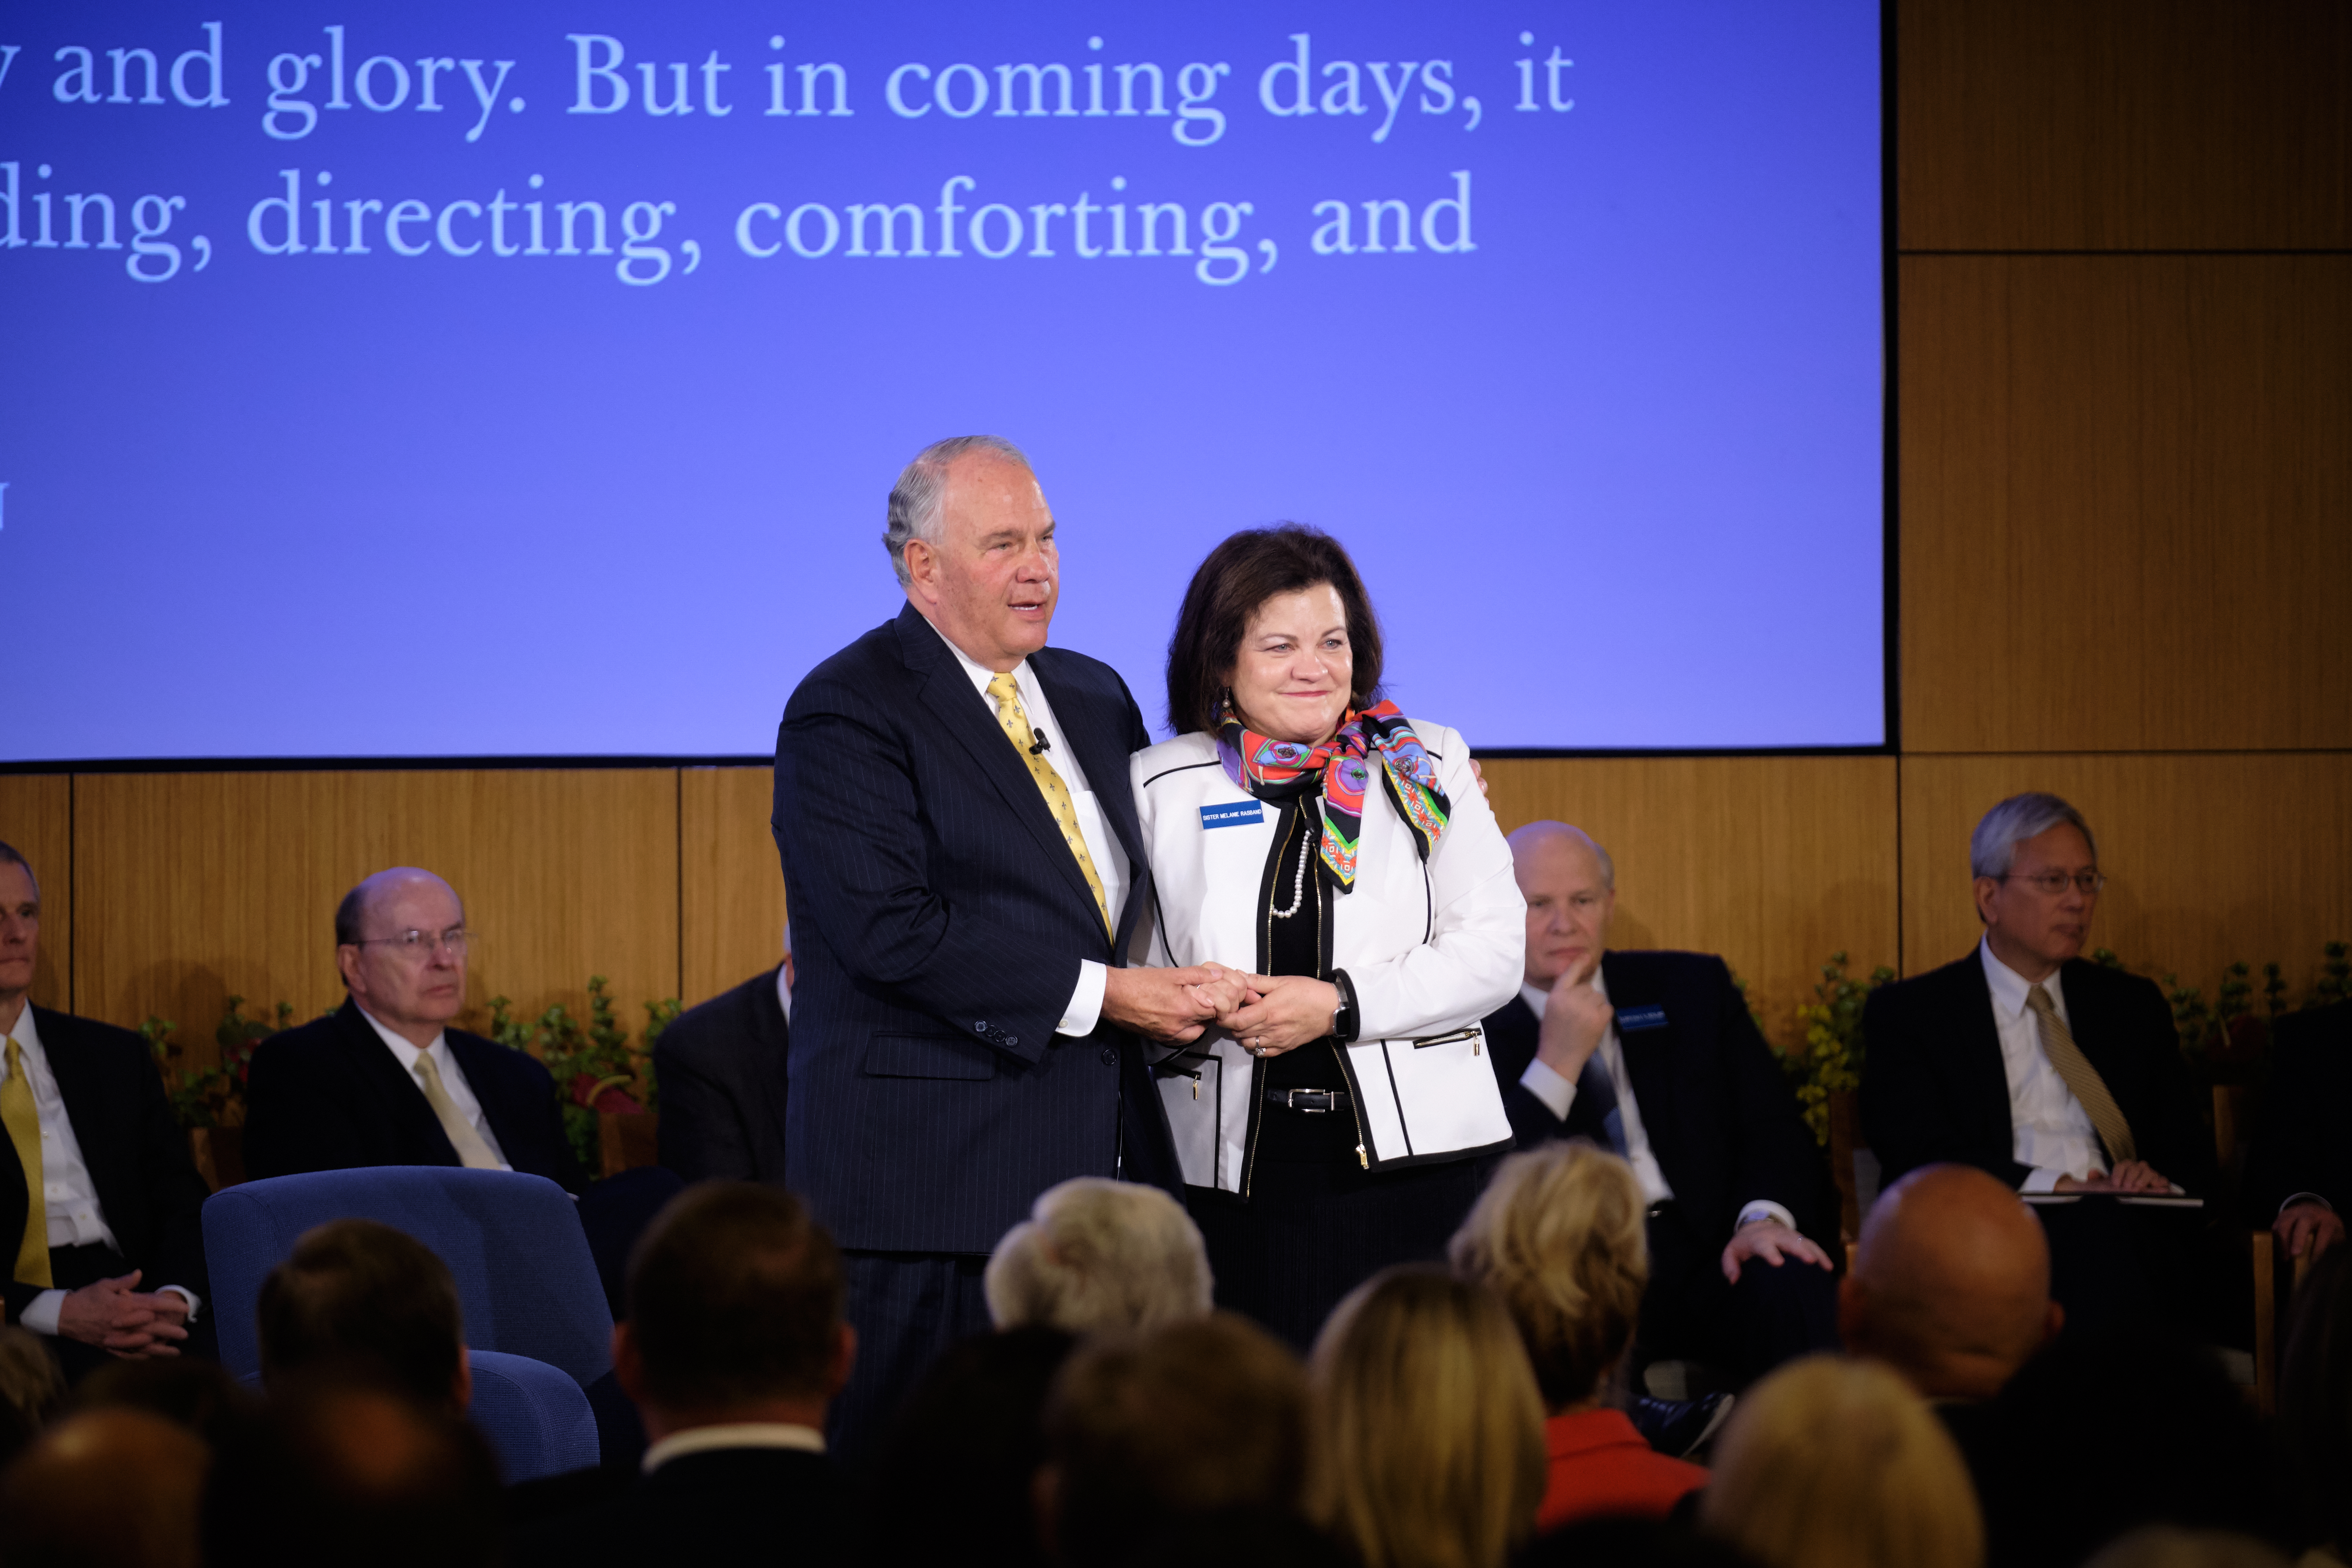 Elder Ronald A. Rasband and his wife, Sister Melanie Rasband, participate in the 2019 Mission Leadership Seminar on June 24, 2019.